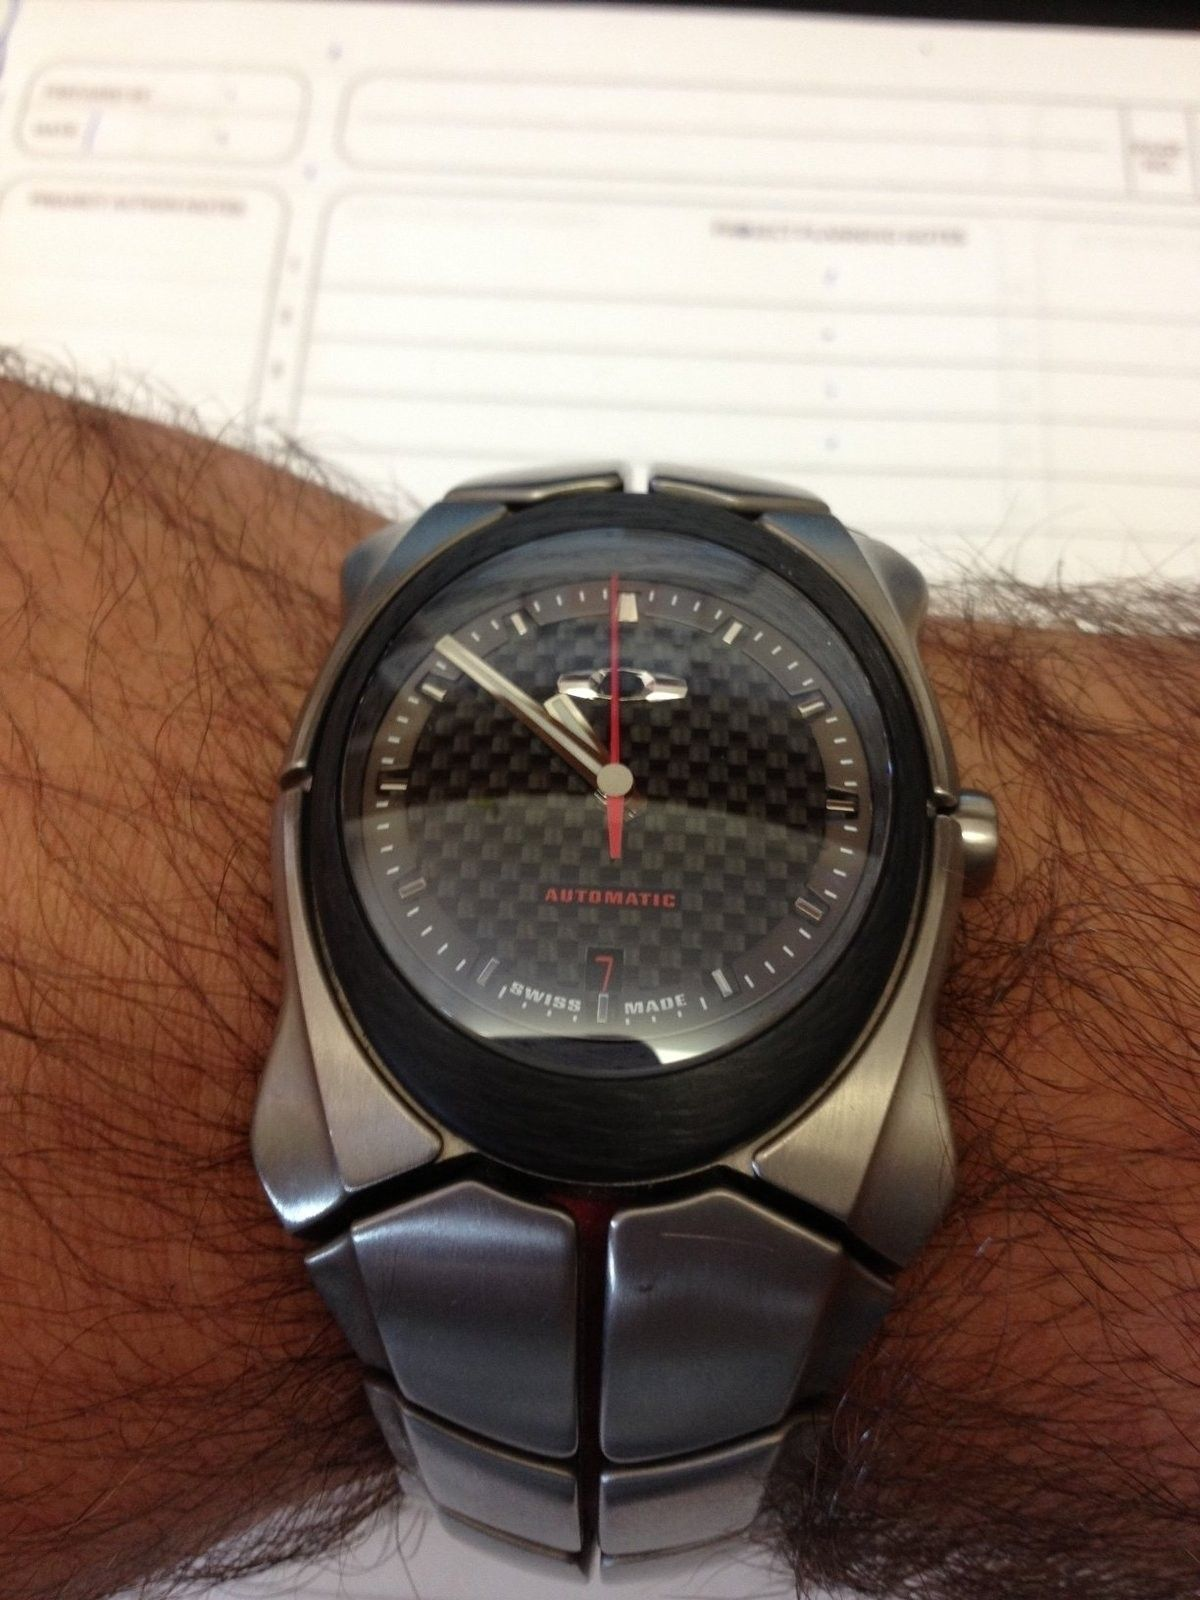 Timebomb2 automatic writting on dial fading from red to white - TB 2.jpg